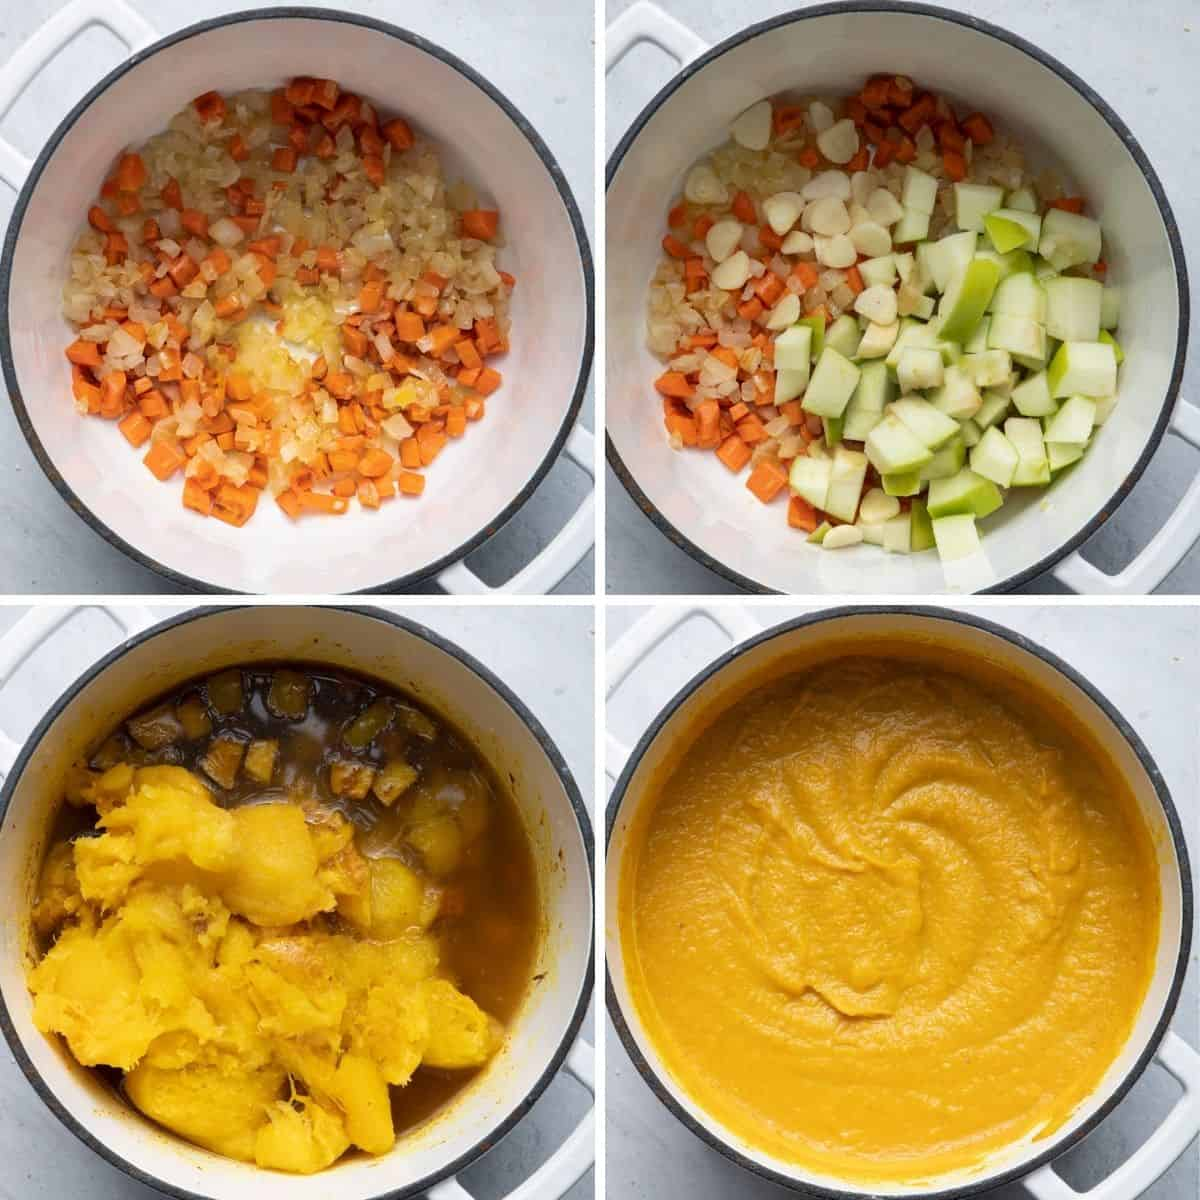 4 image collage to show the ingredients for the soup in the pot getting cooked and then getting pureed